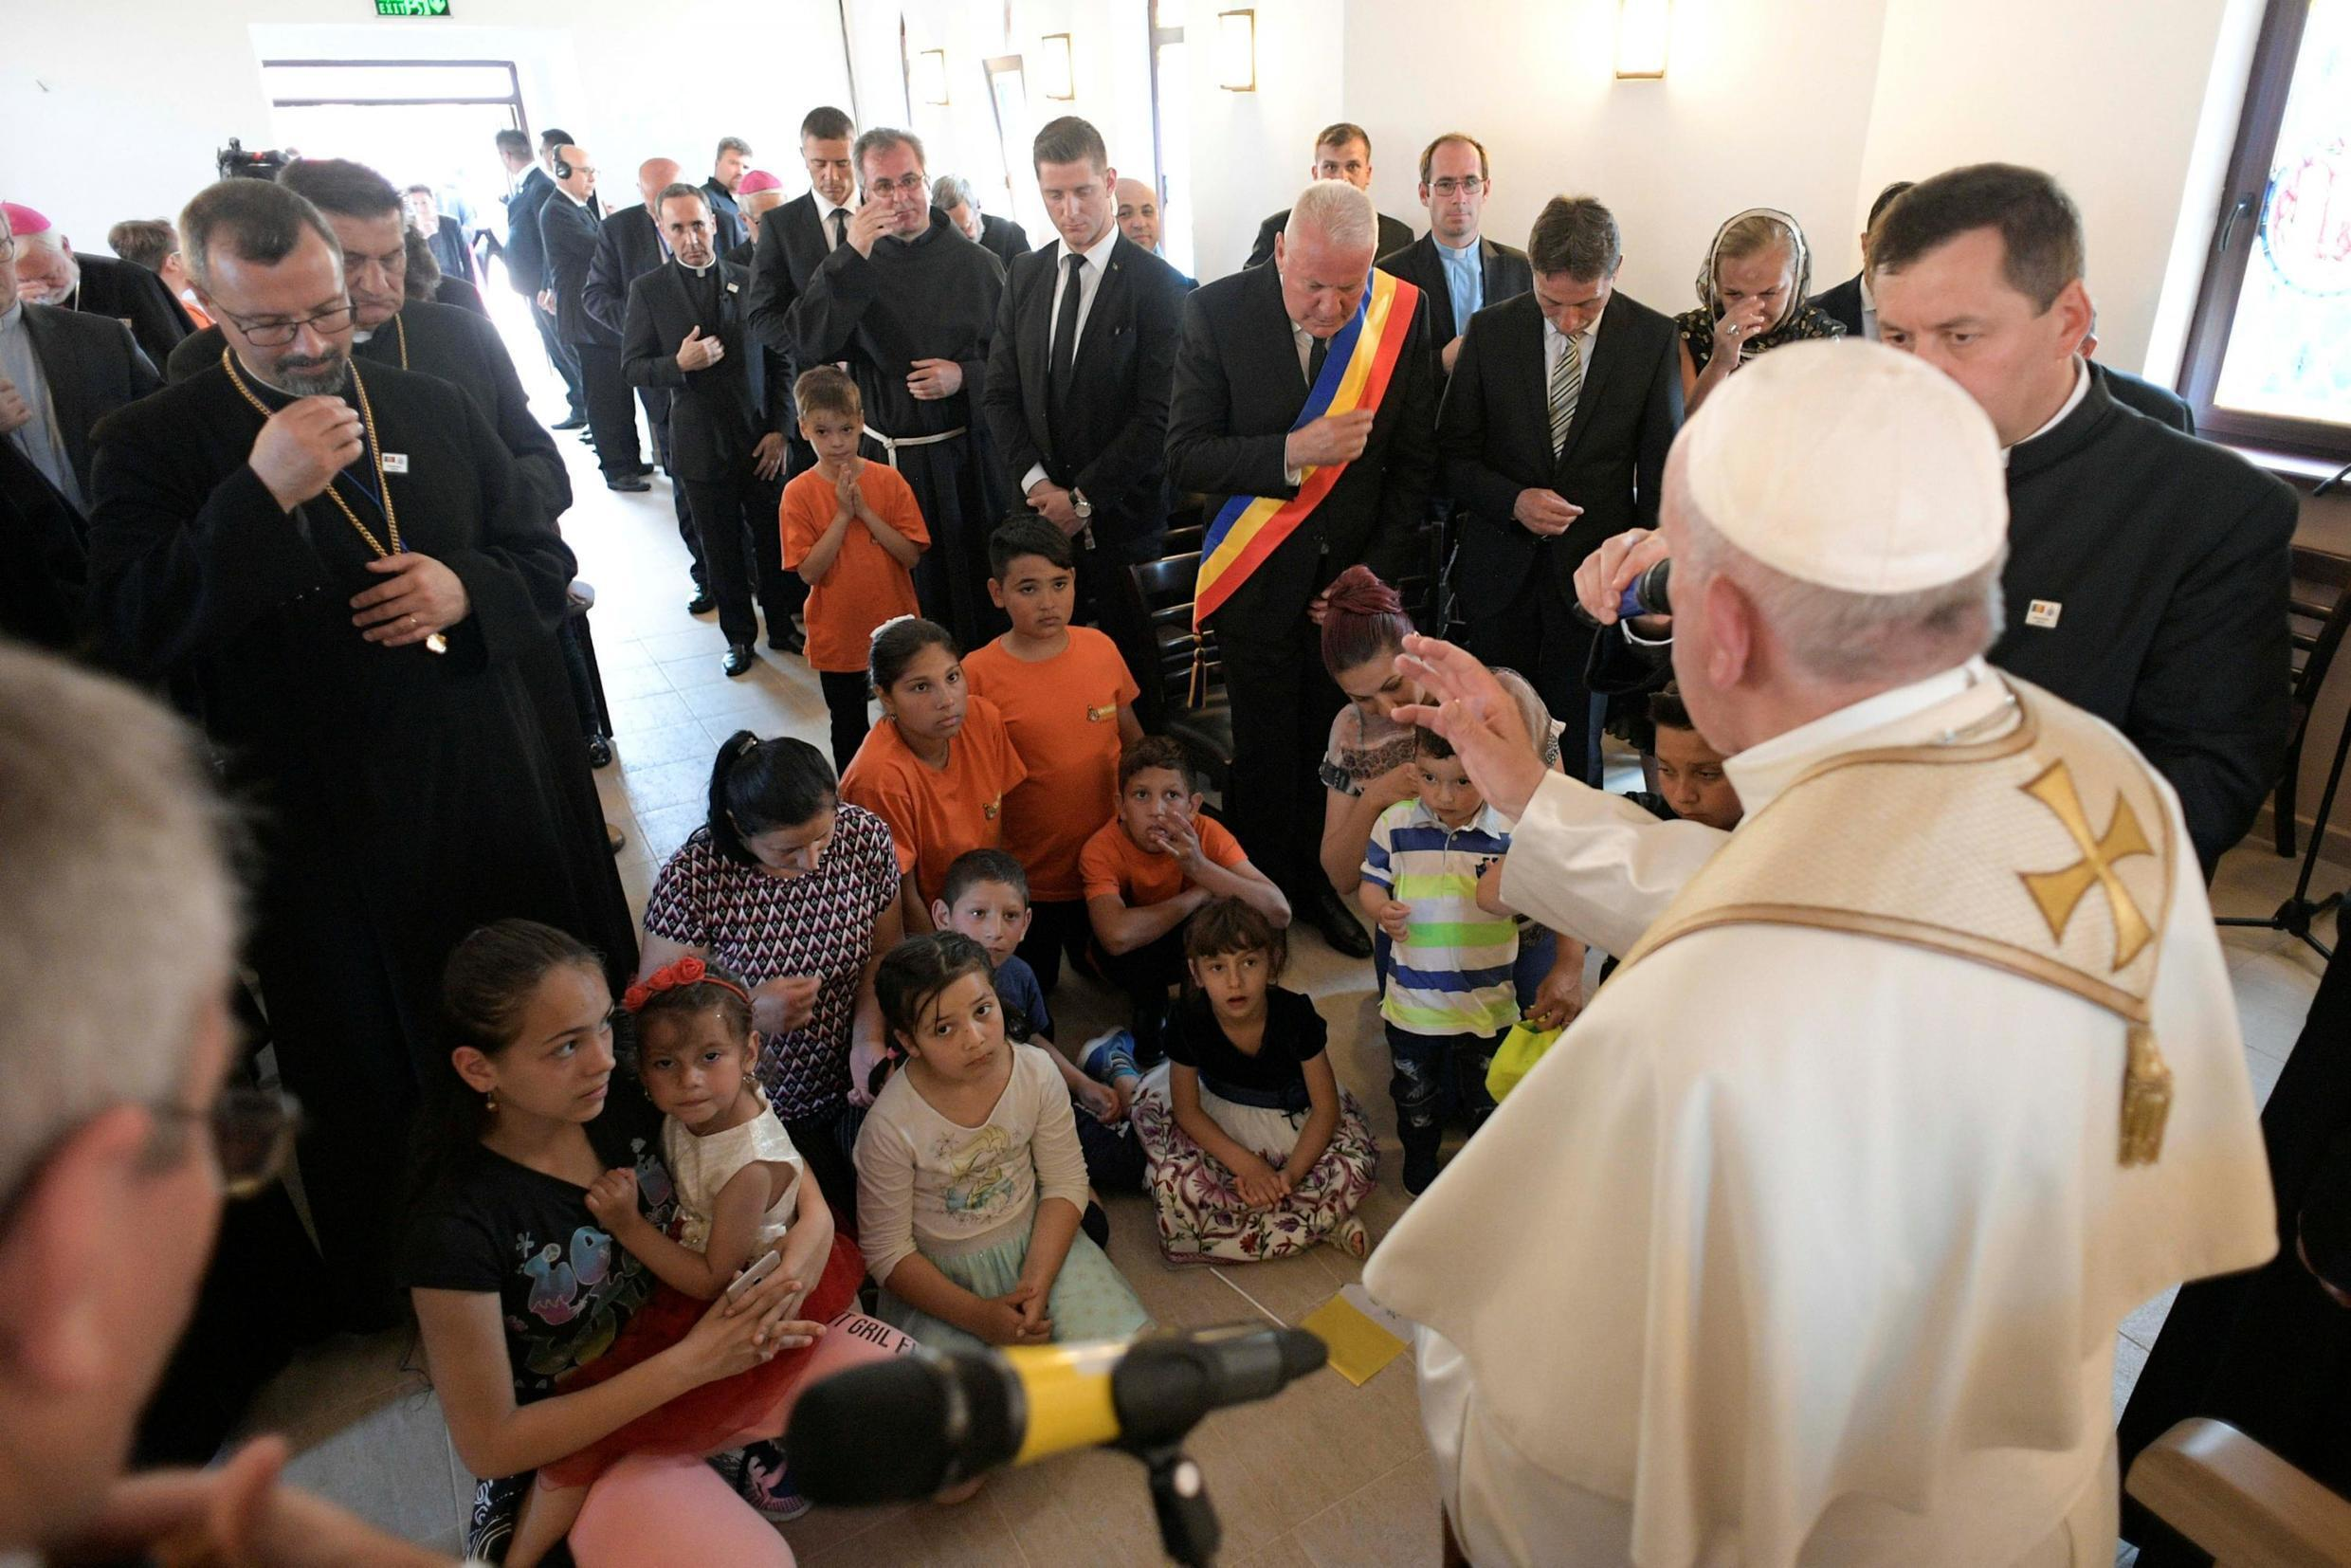 Pope Francis meets with members of the Roma community in the Barbu Lautaru district of Blaj, Romania June 2, 2019.